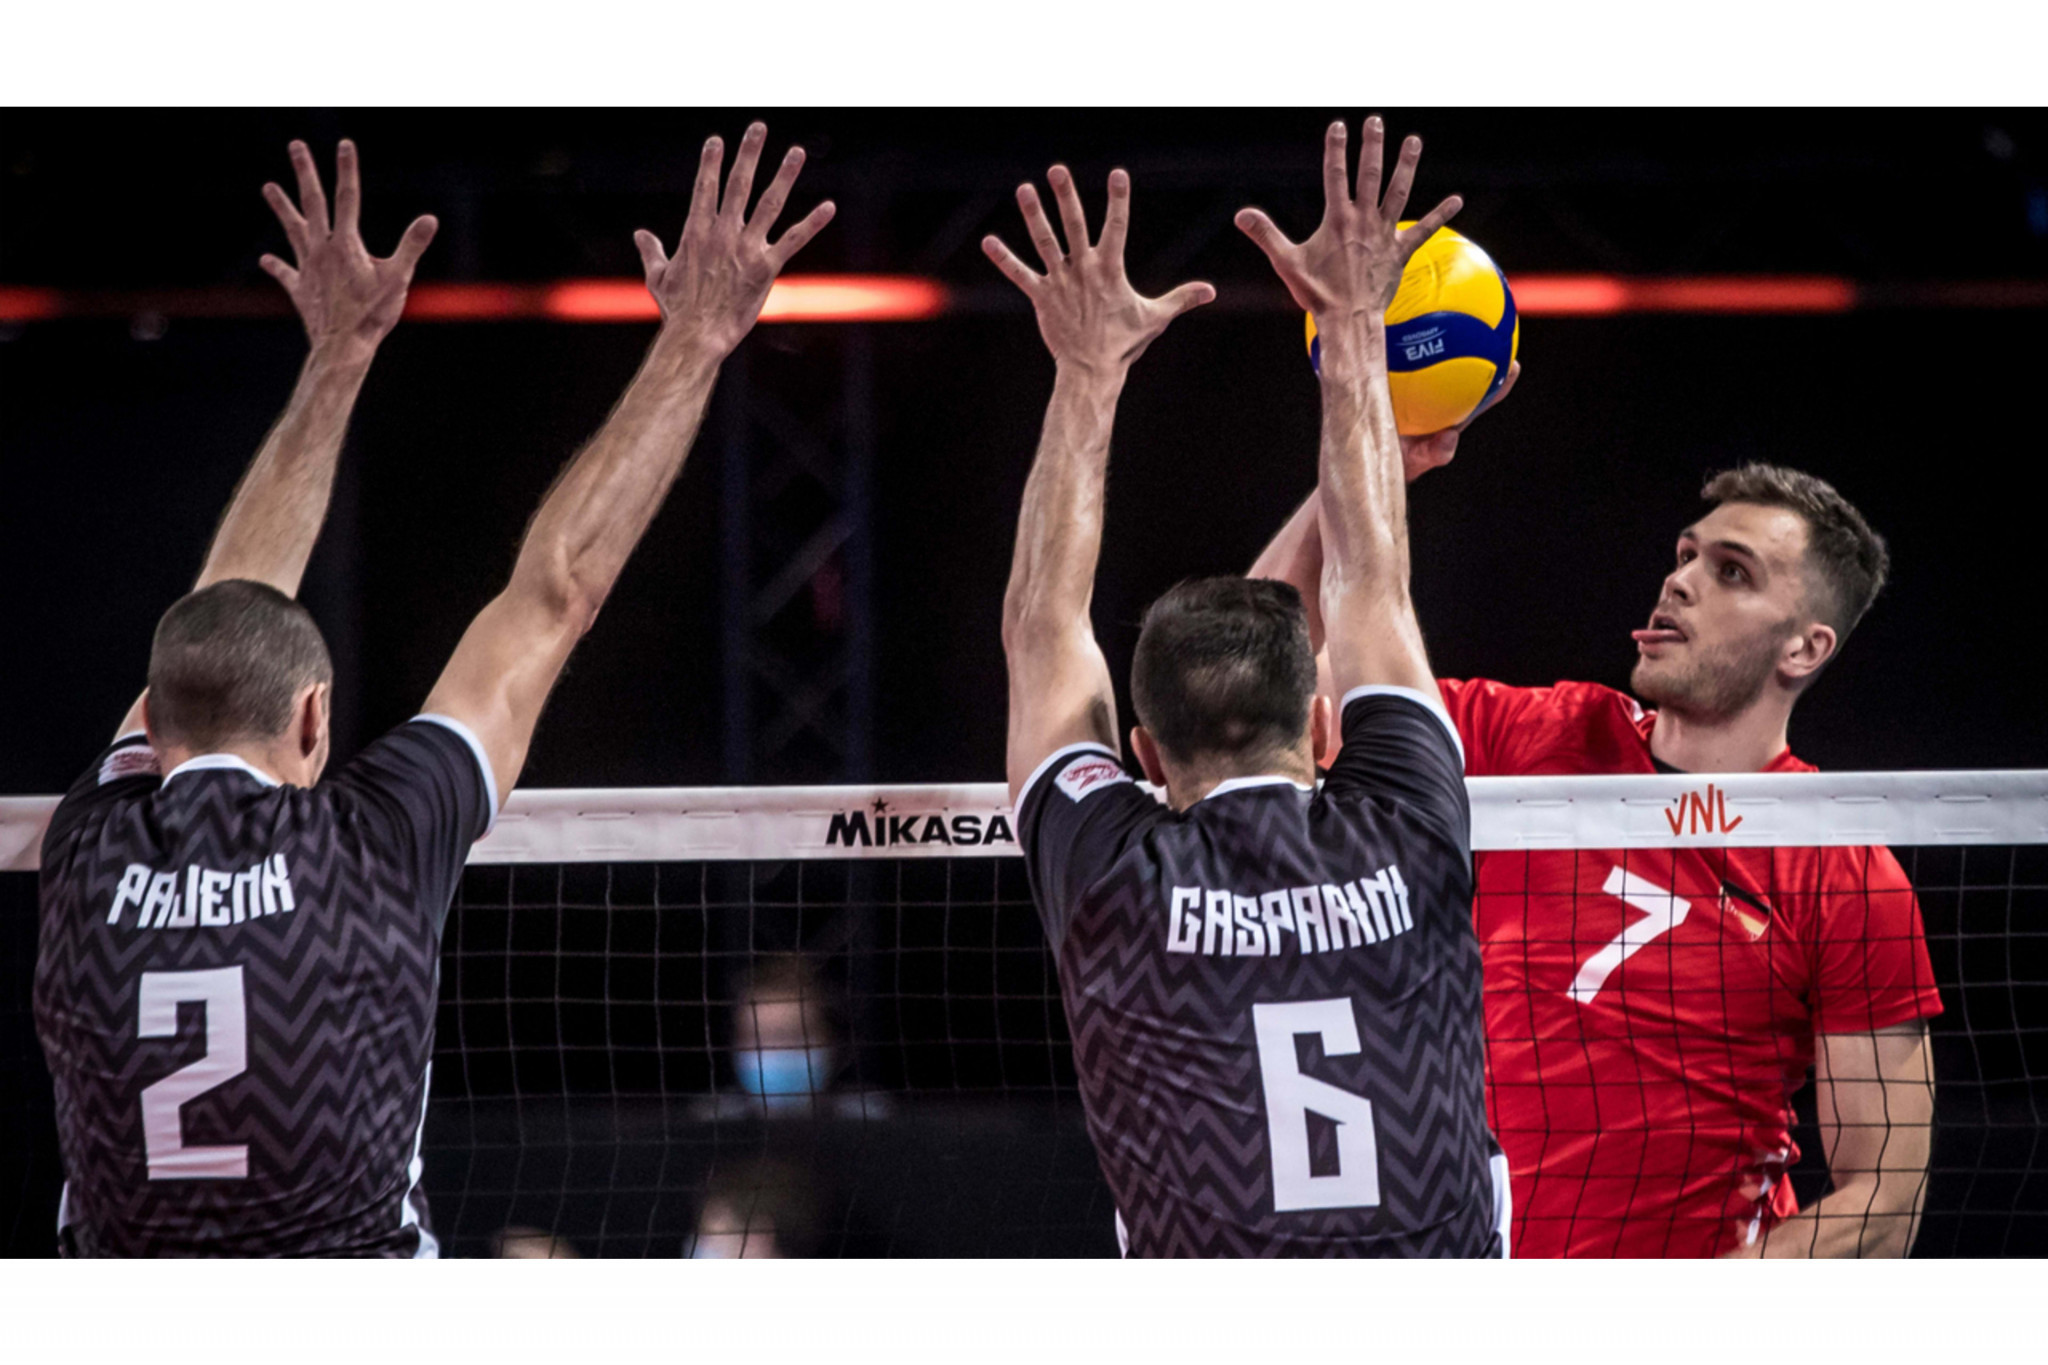 Slovenia, playing in black, today defeated Bulgaria to qualify for the semi-finals of the men's Volleyball Nations League ©Volleyball World